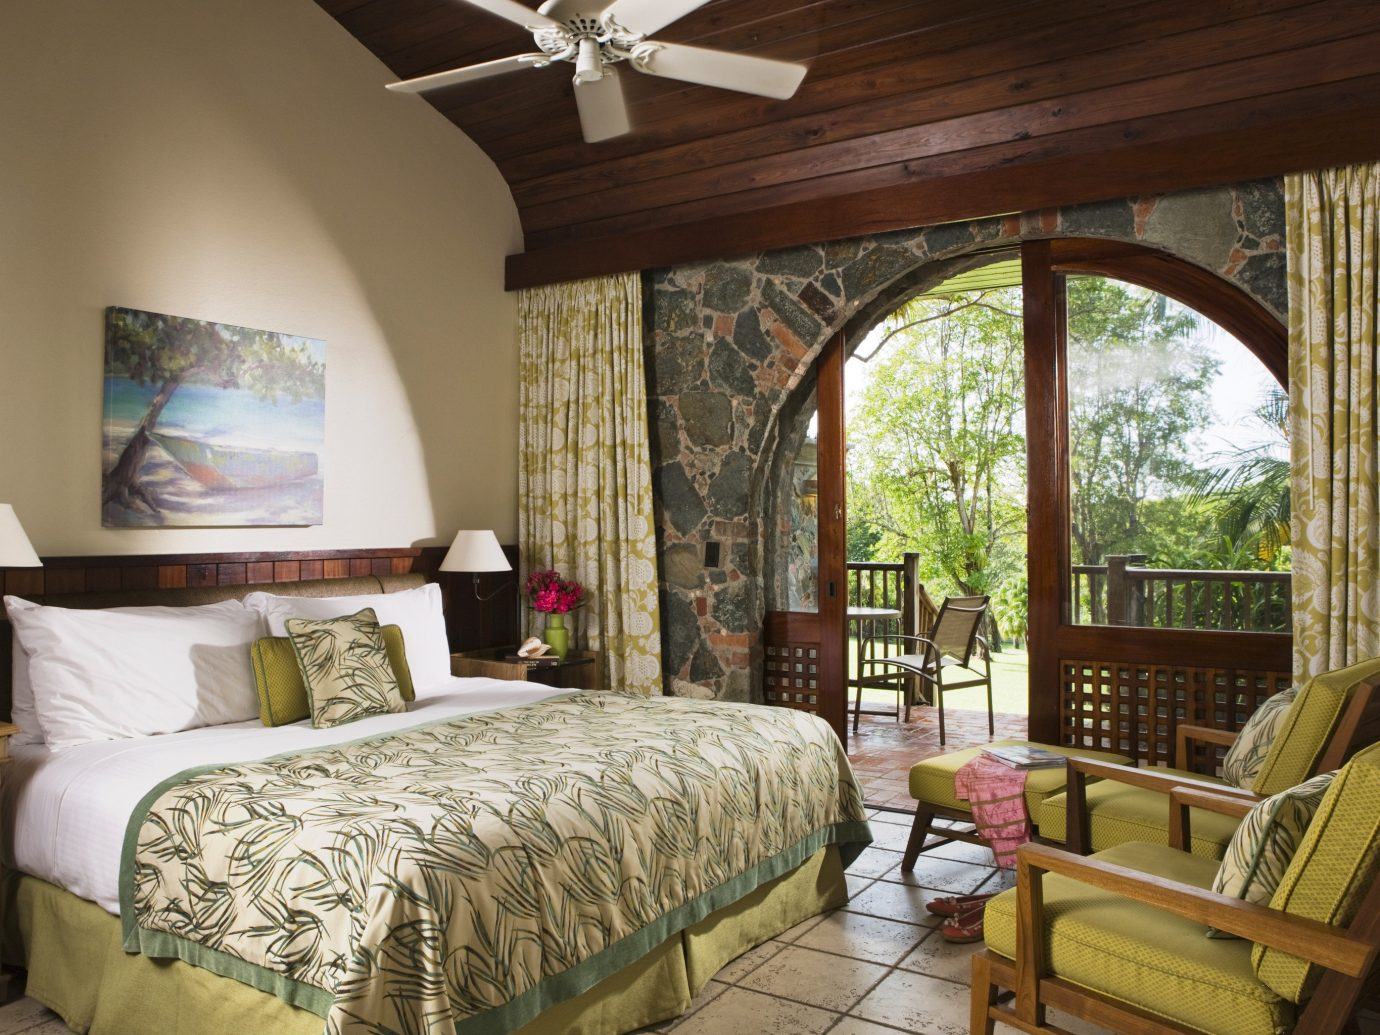 Bedroom Eco Family Hotels Luxury Resort Romance Romantic Scenic views Suite Trip Ideas Tropical indoor bed sofa room window property estate cottage home living room Villa interior design real estate farmhouse mansion furniture